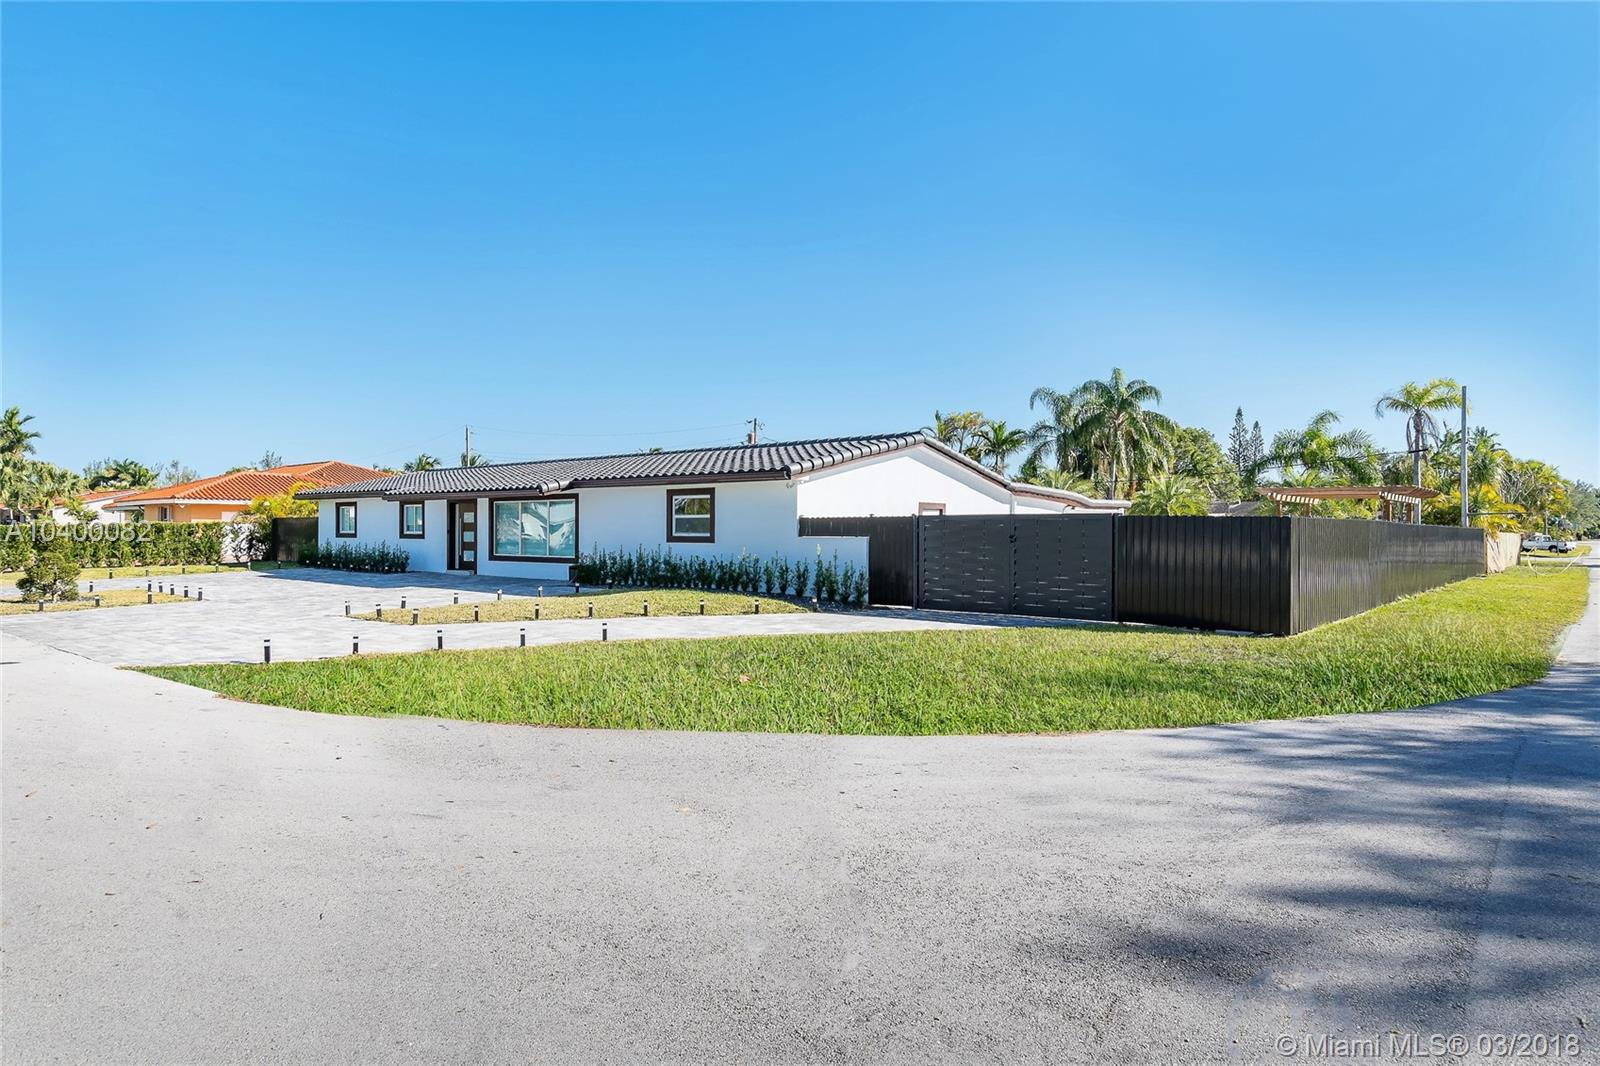 11725 Sw 98th Ave, Miami FL, 33176